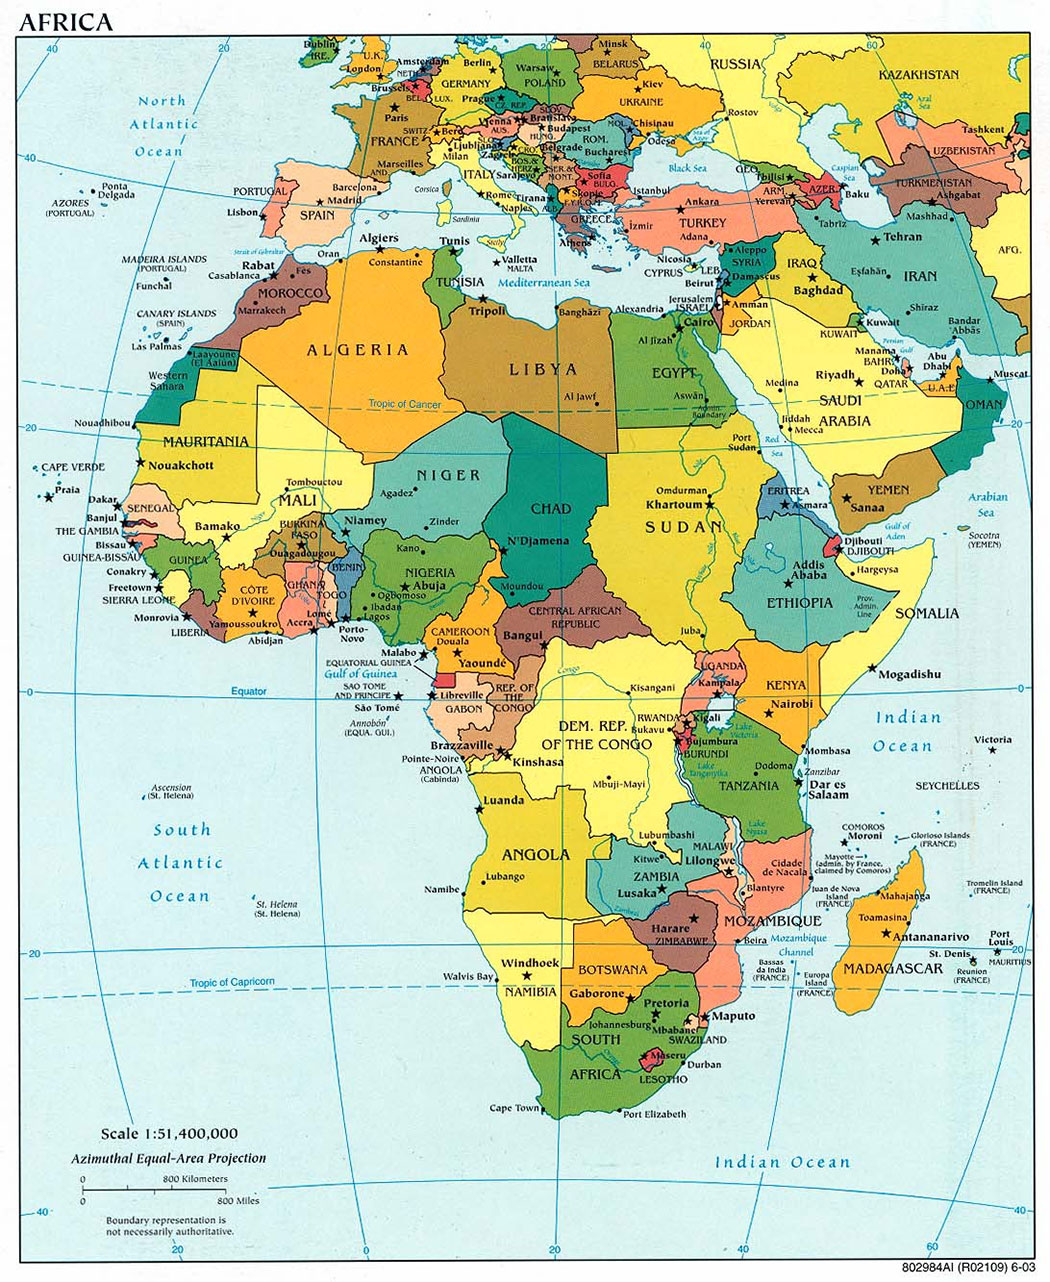 Map Of Africa And Middle East Countries.Map Of Europe Middle East And Africa Jackenjuul